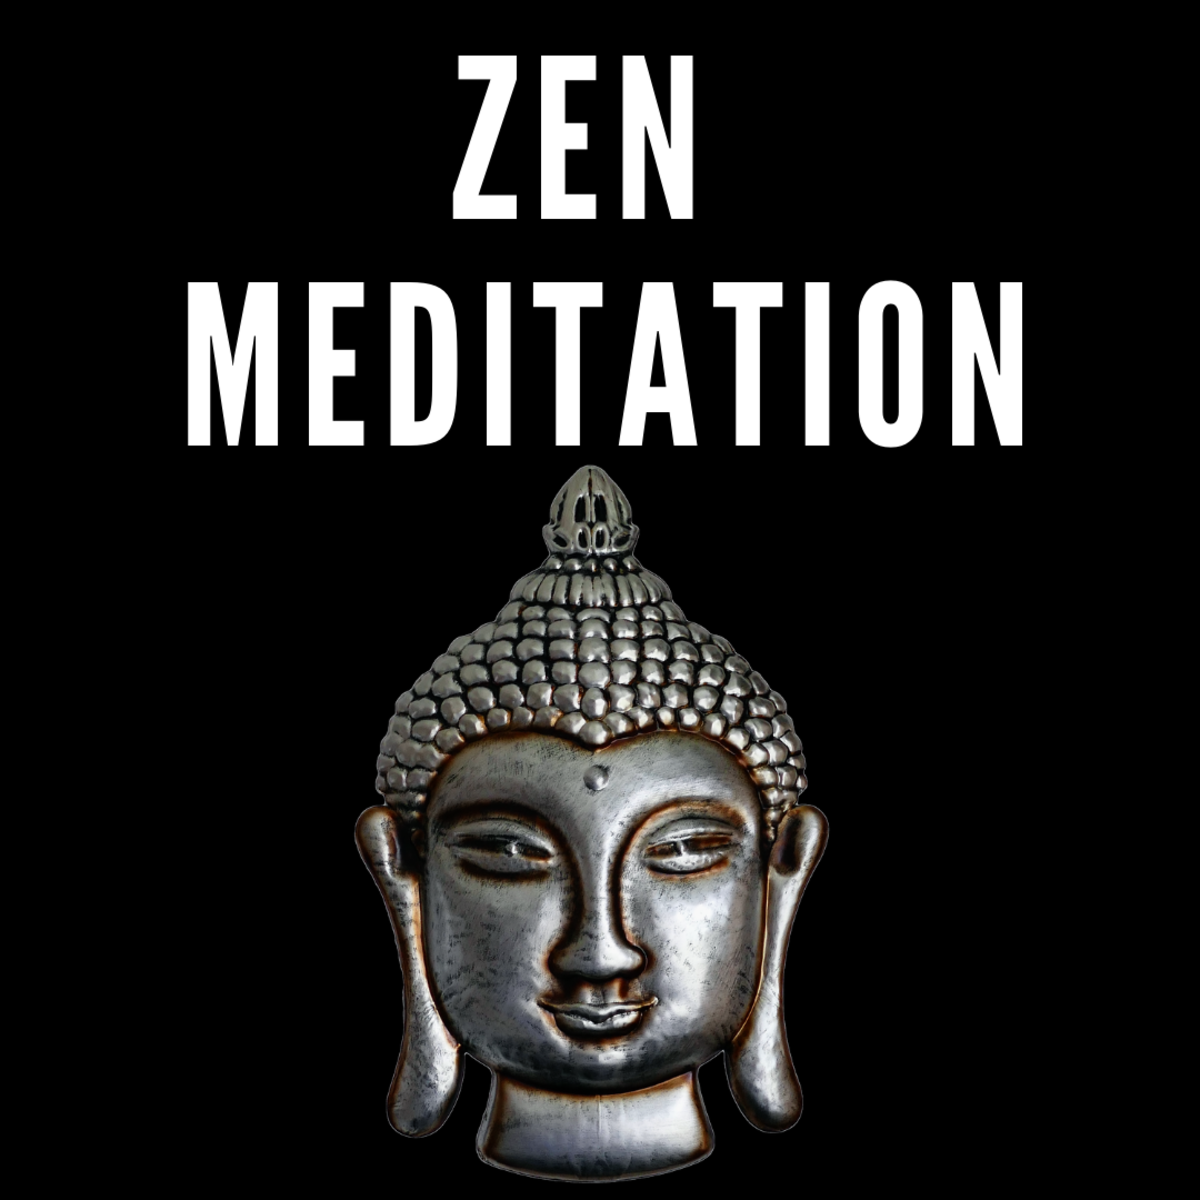 How to practice Zen meditation to attain enlightenment and live a fulfilled life.